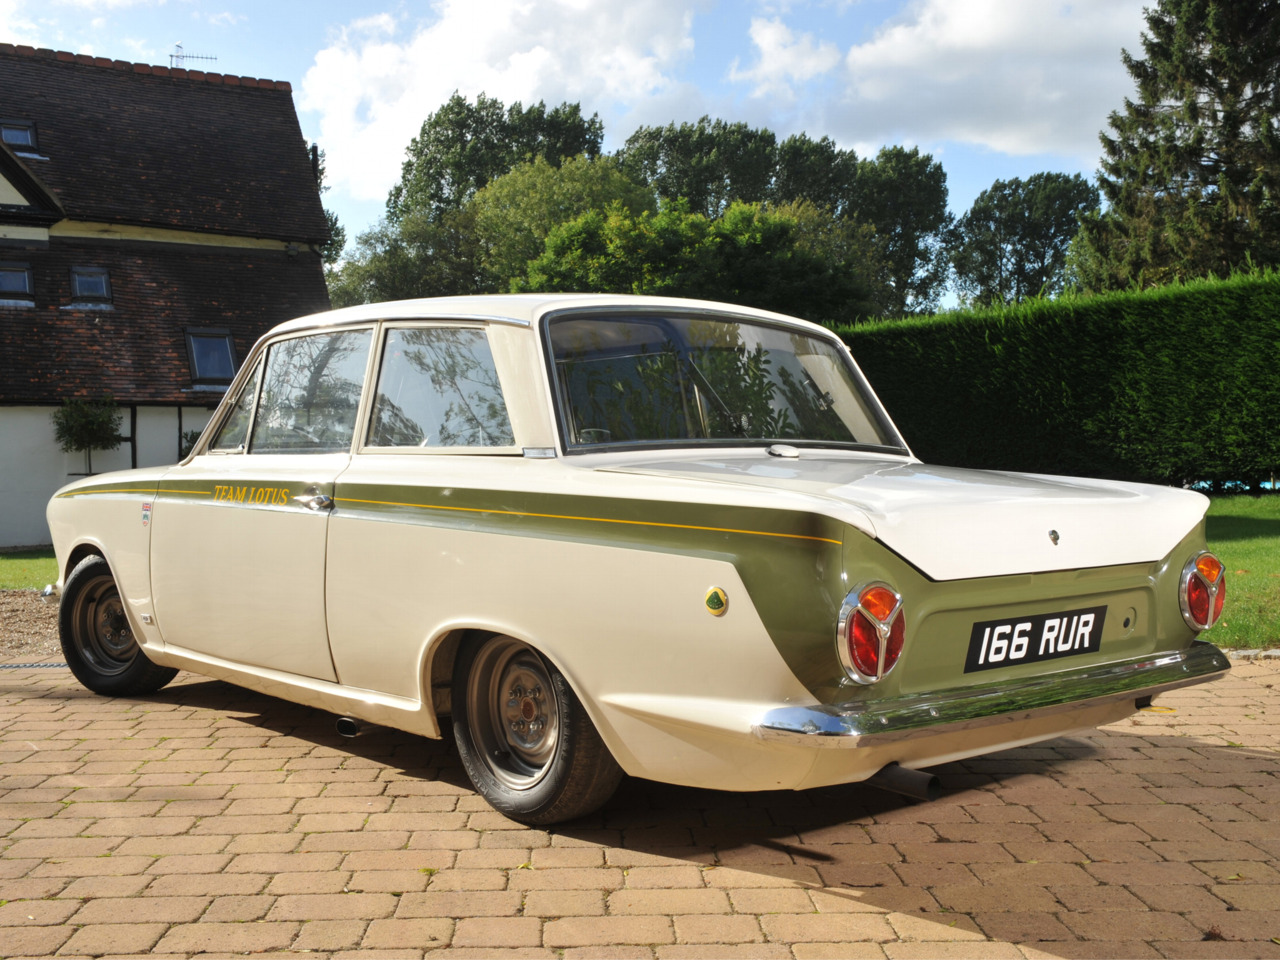 Ford Performance Cars >> FAB WHEELS DIGEST (F.W.D.): Ford Lotus Cortina Mk1 (1963-66)